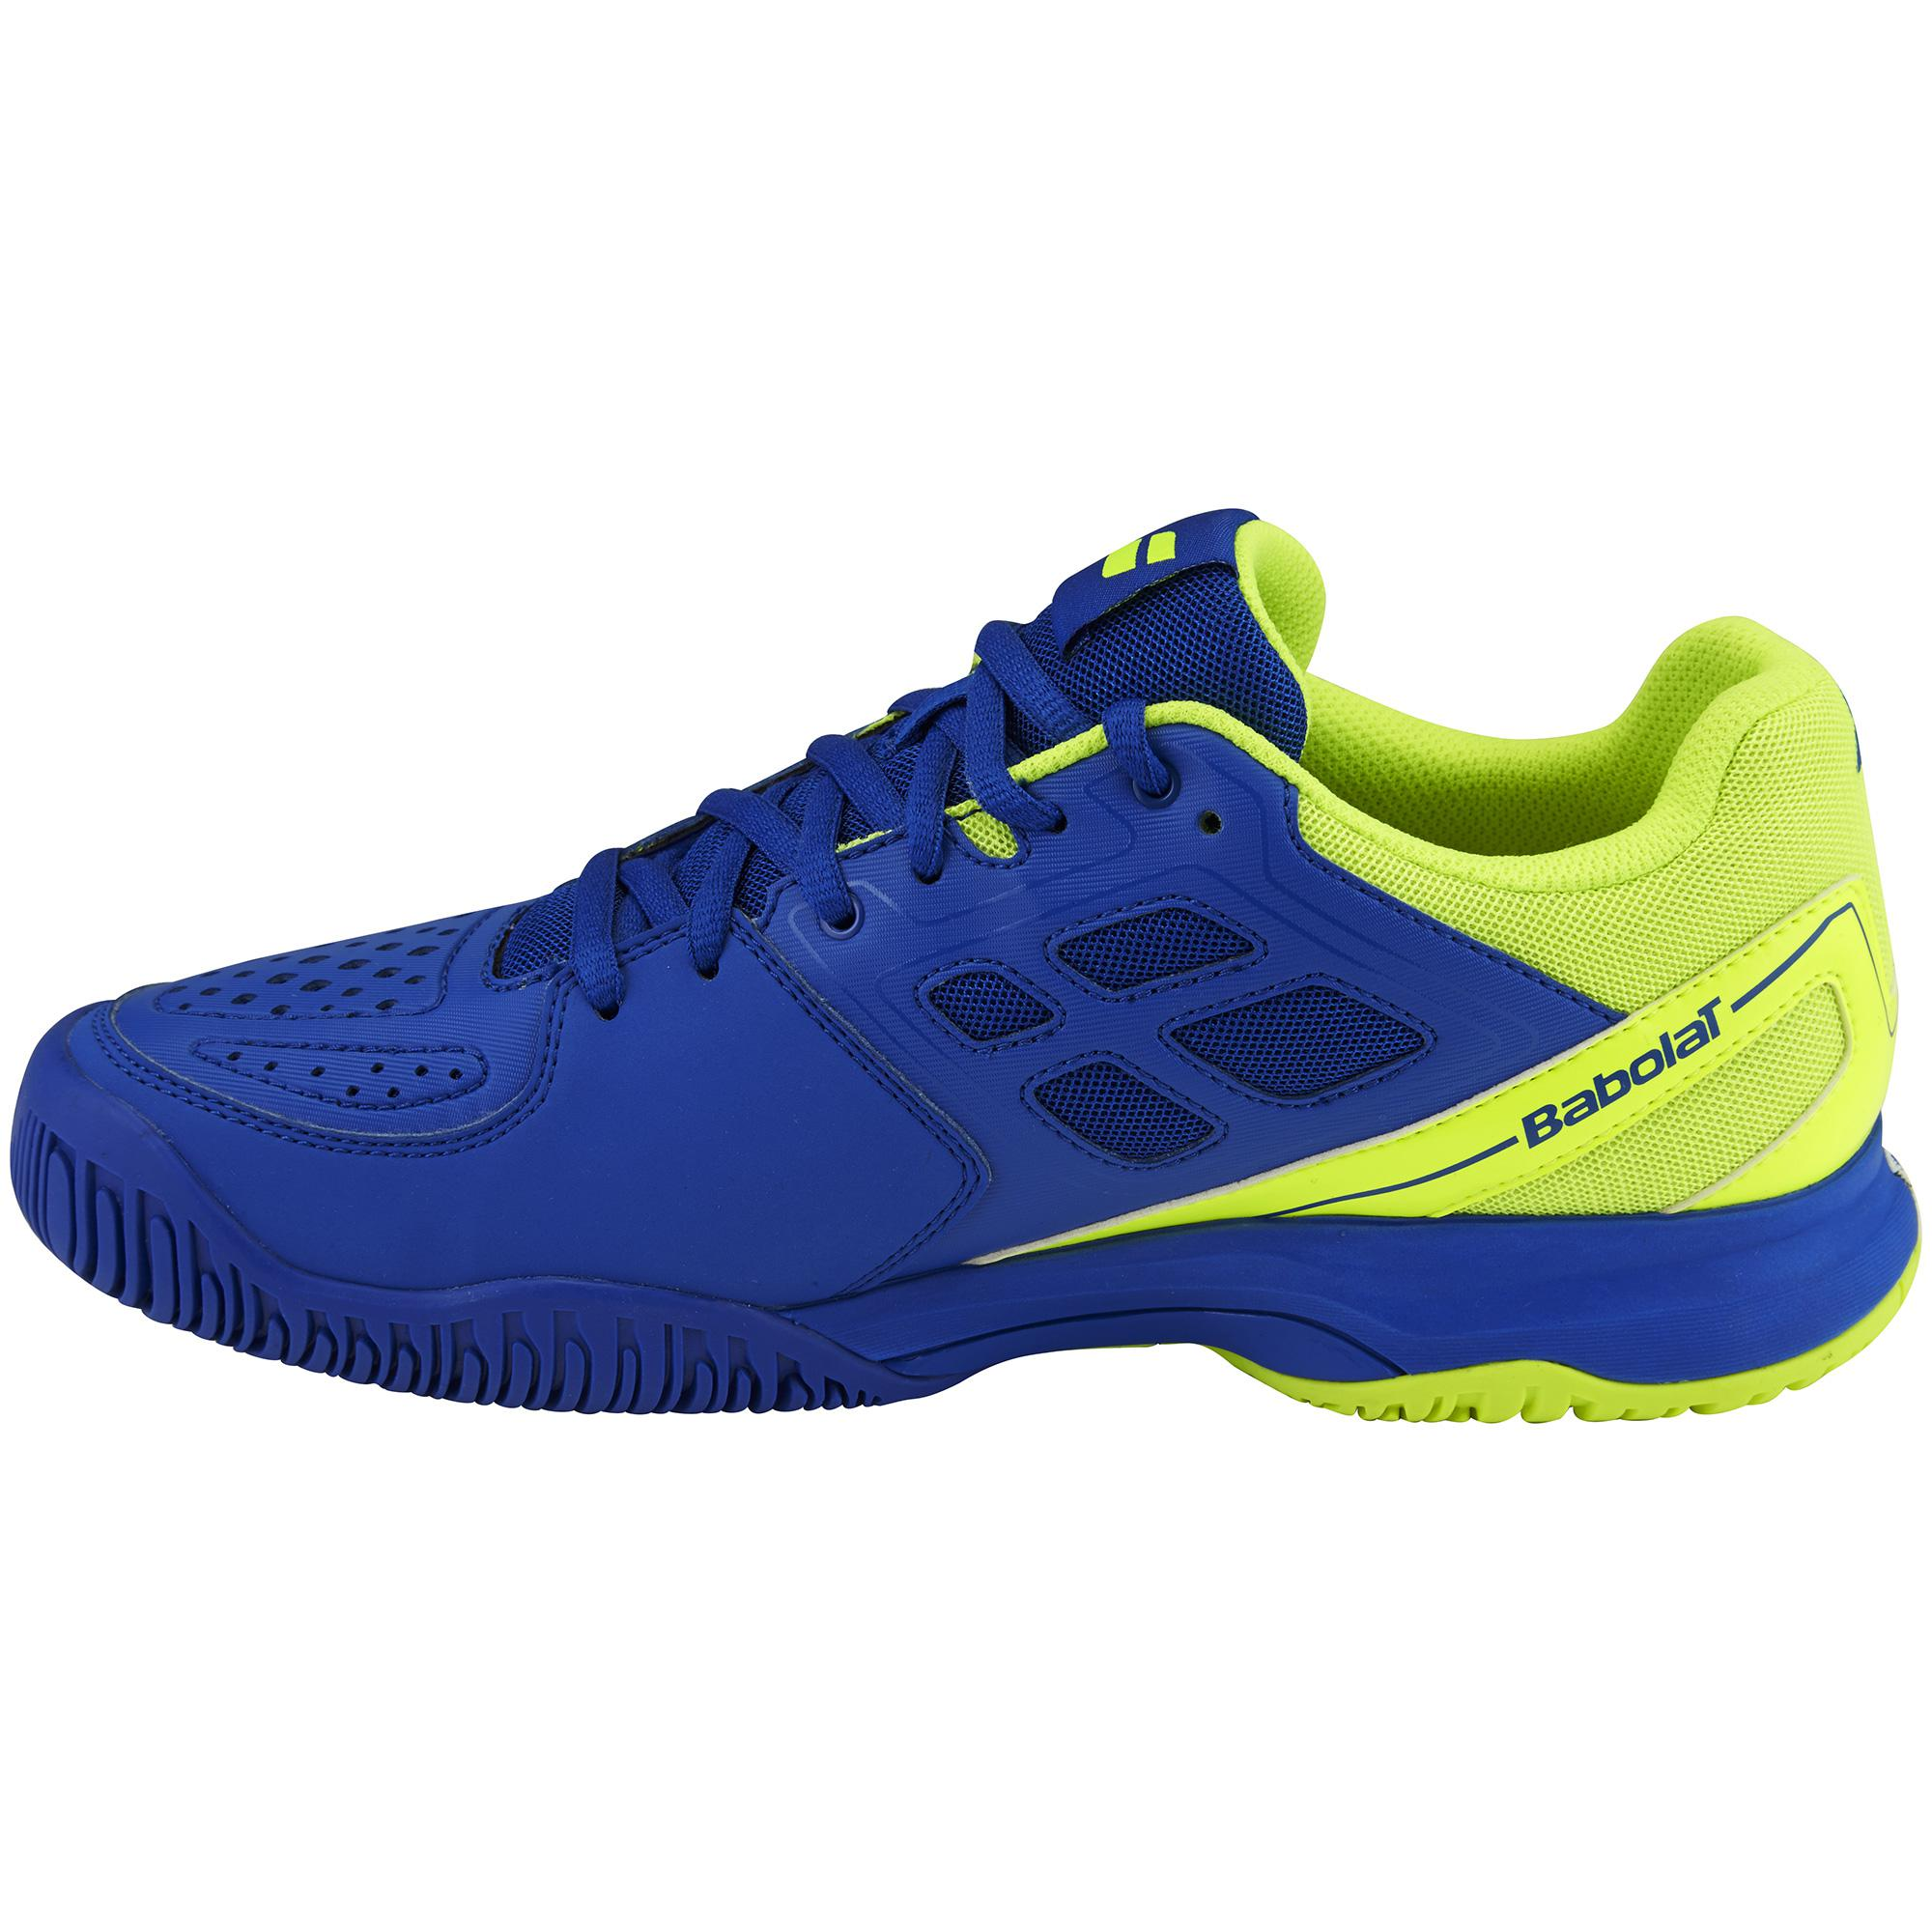 babolat mens pulsion all court tennis shoes blue yellow